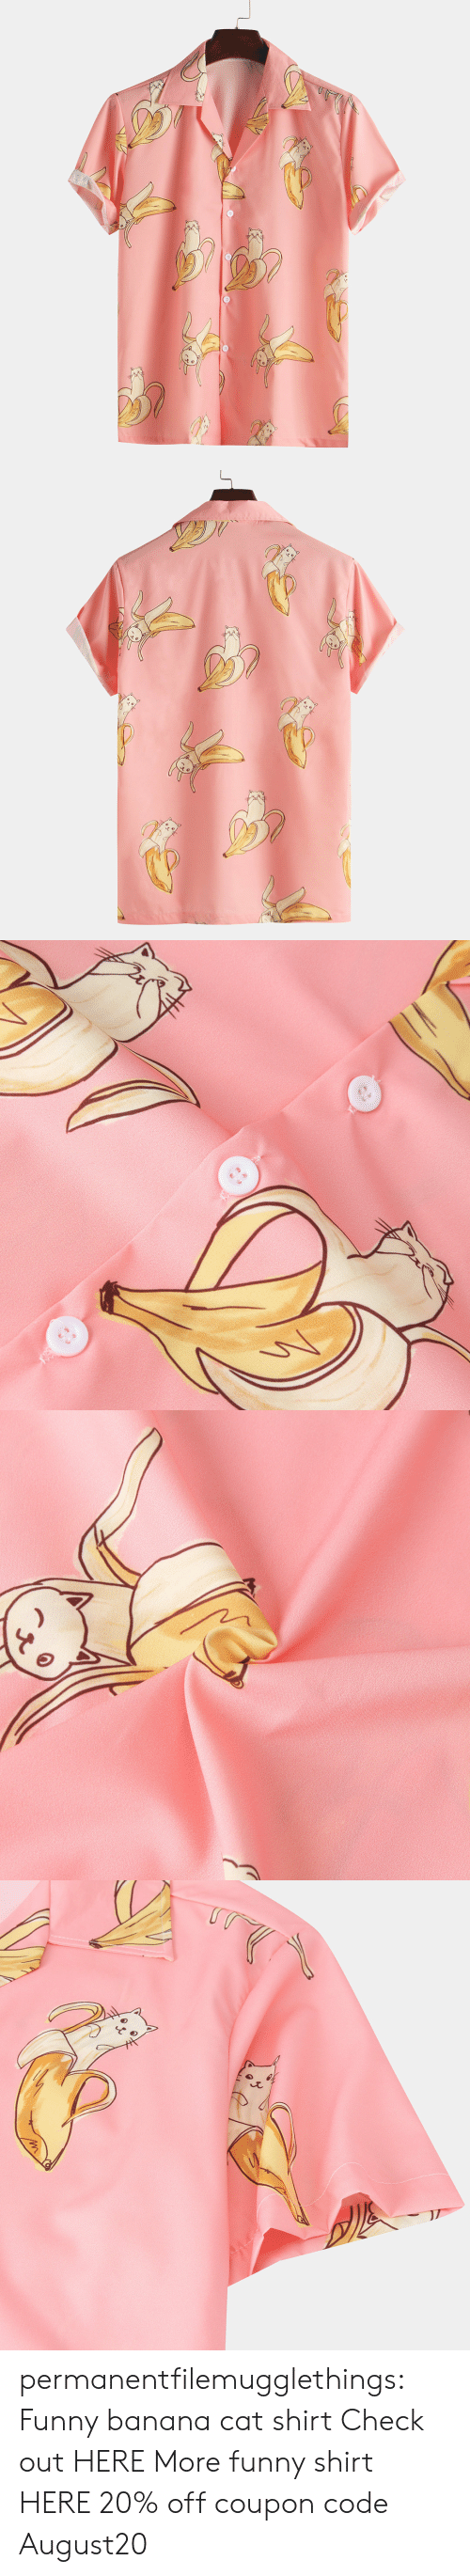 More Funny: permanentfilemugglethings: Funny banana cat shirt Check out HERE More funny shirt HERE 20% off coupon code:August20